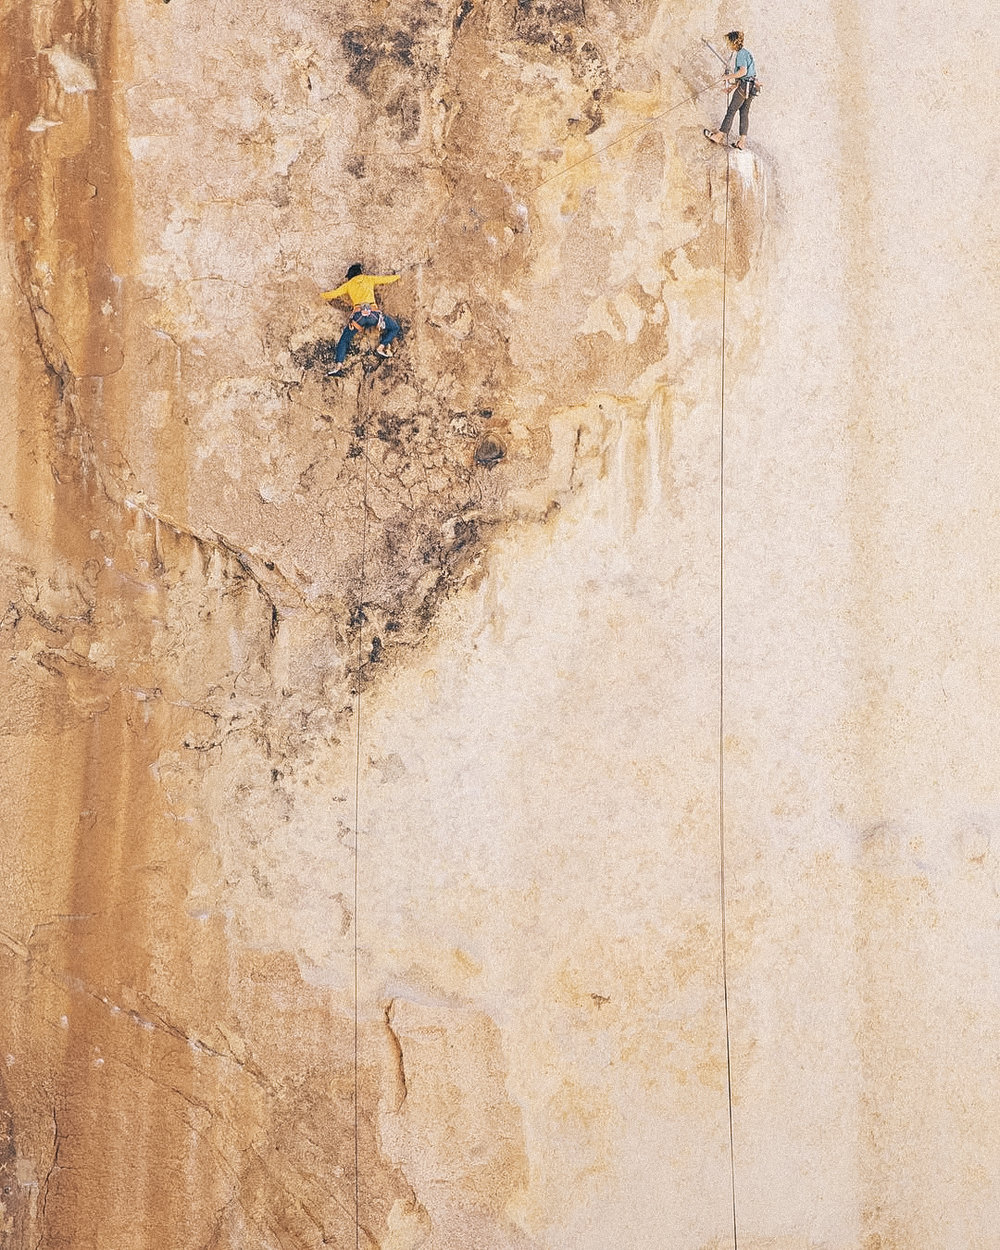 Figures on a Landscape (5.10+) -  Photo by Jonathon Finch, Climbers: Connell Ford & Will Levandowski